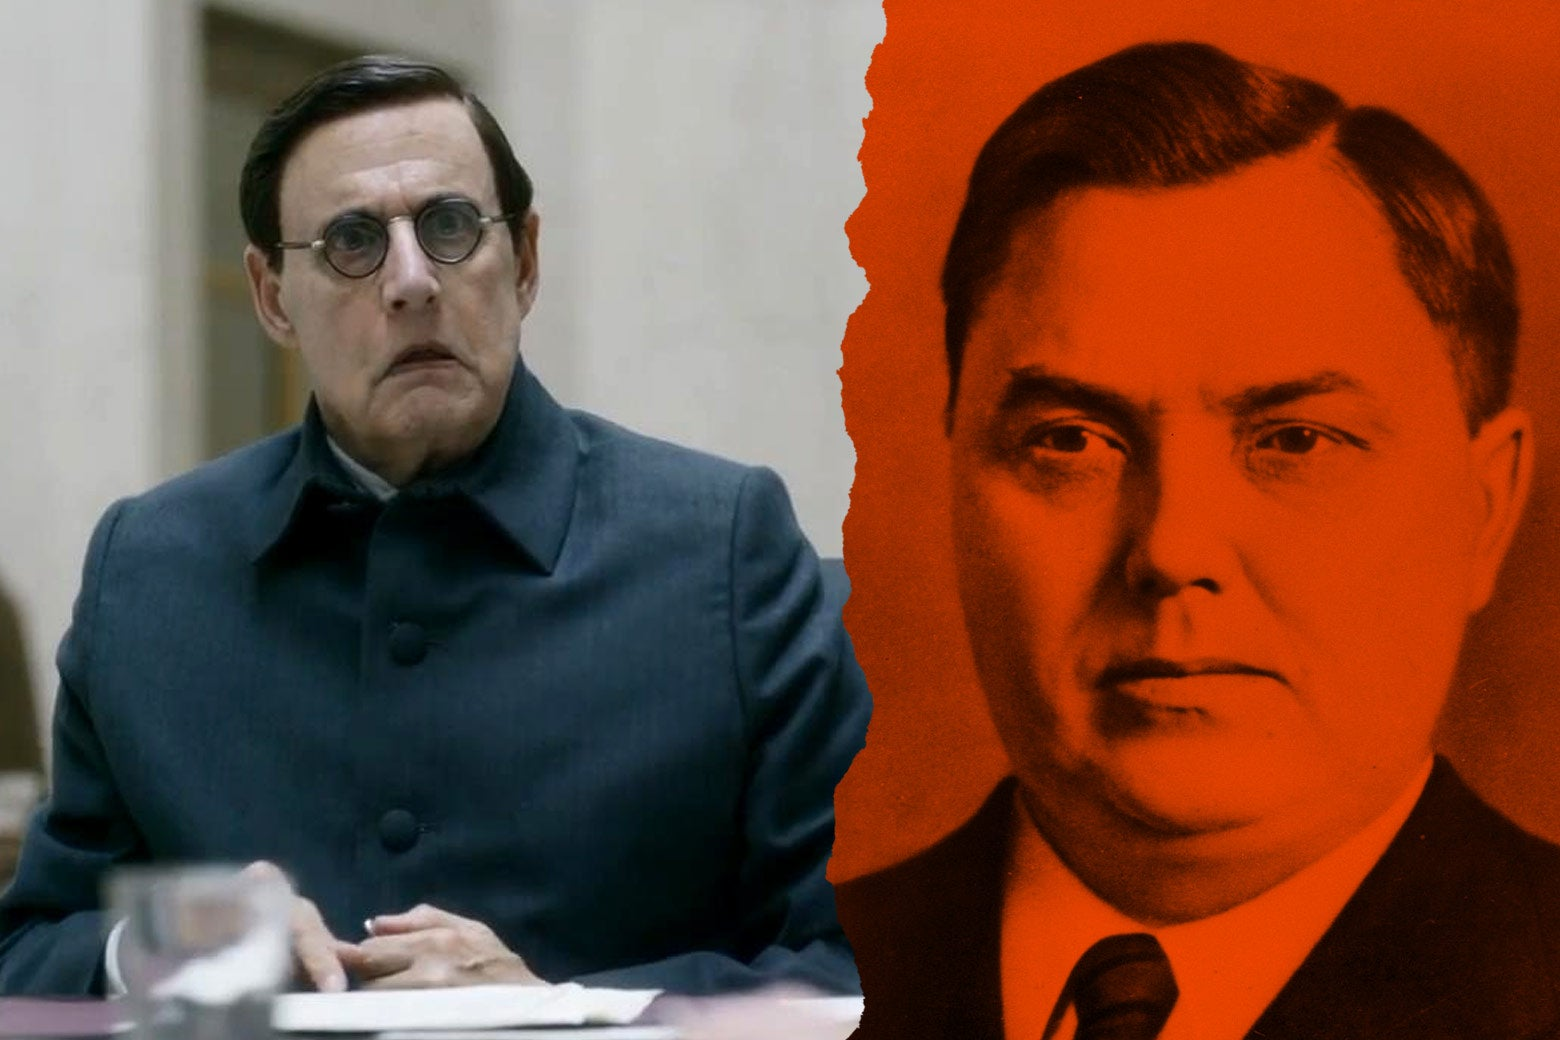 At left: Jeffrey Tambor as Georgy Malenkov in the film. At right: the real Georgy Malenkov.